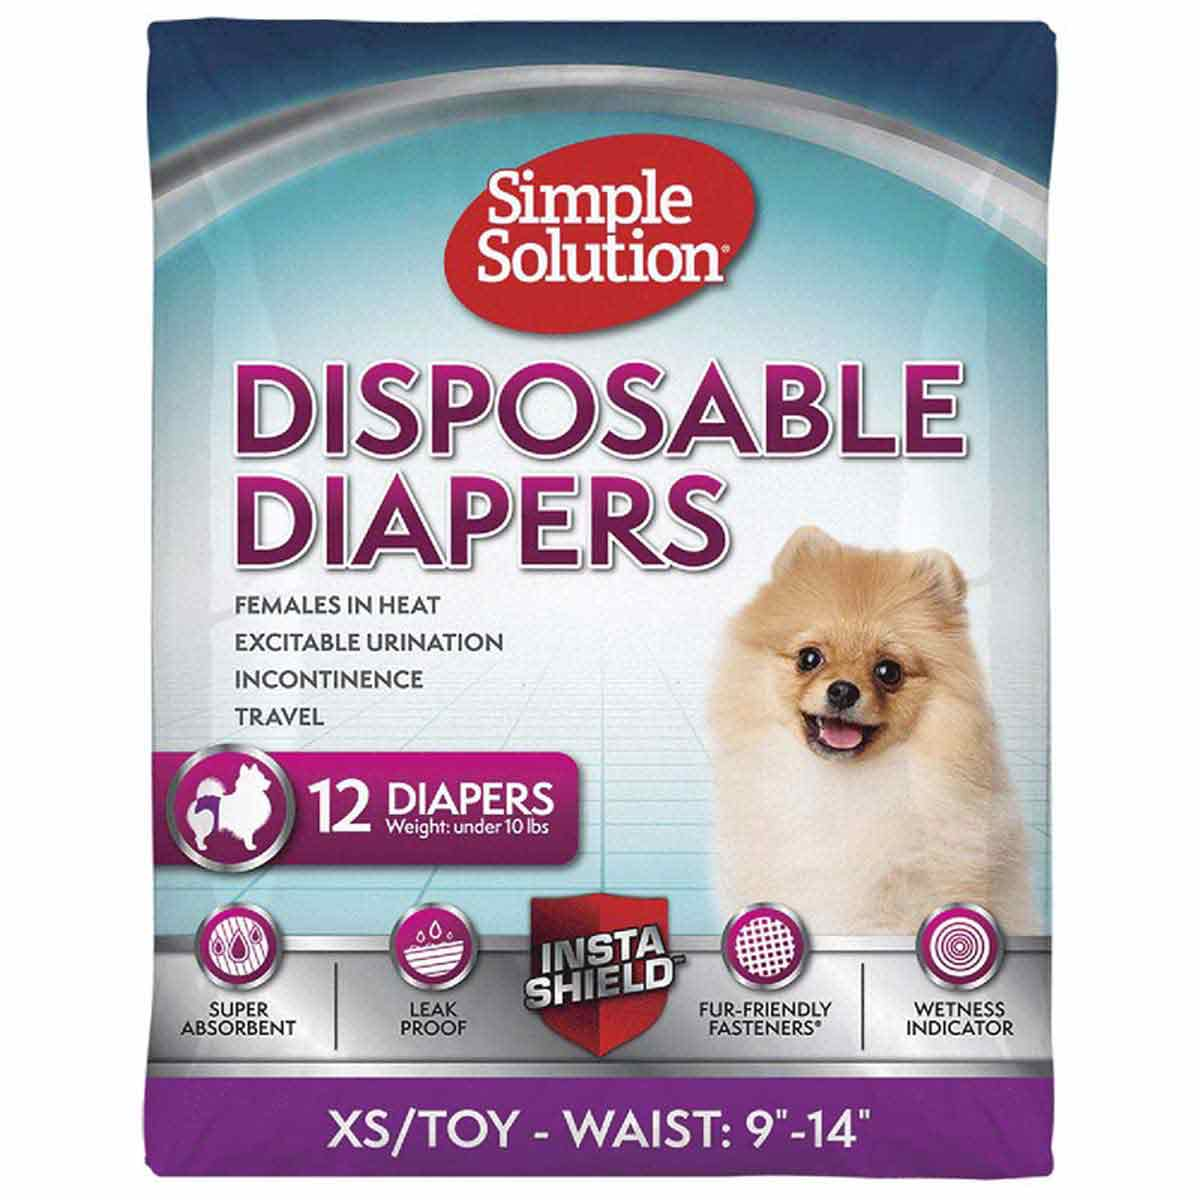 XS Simple Solution Disposable Diapers 12 Pack Under 10 lbs